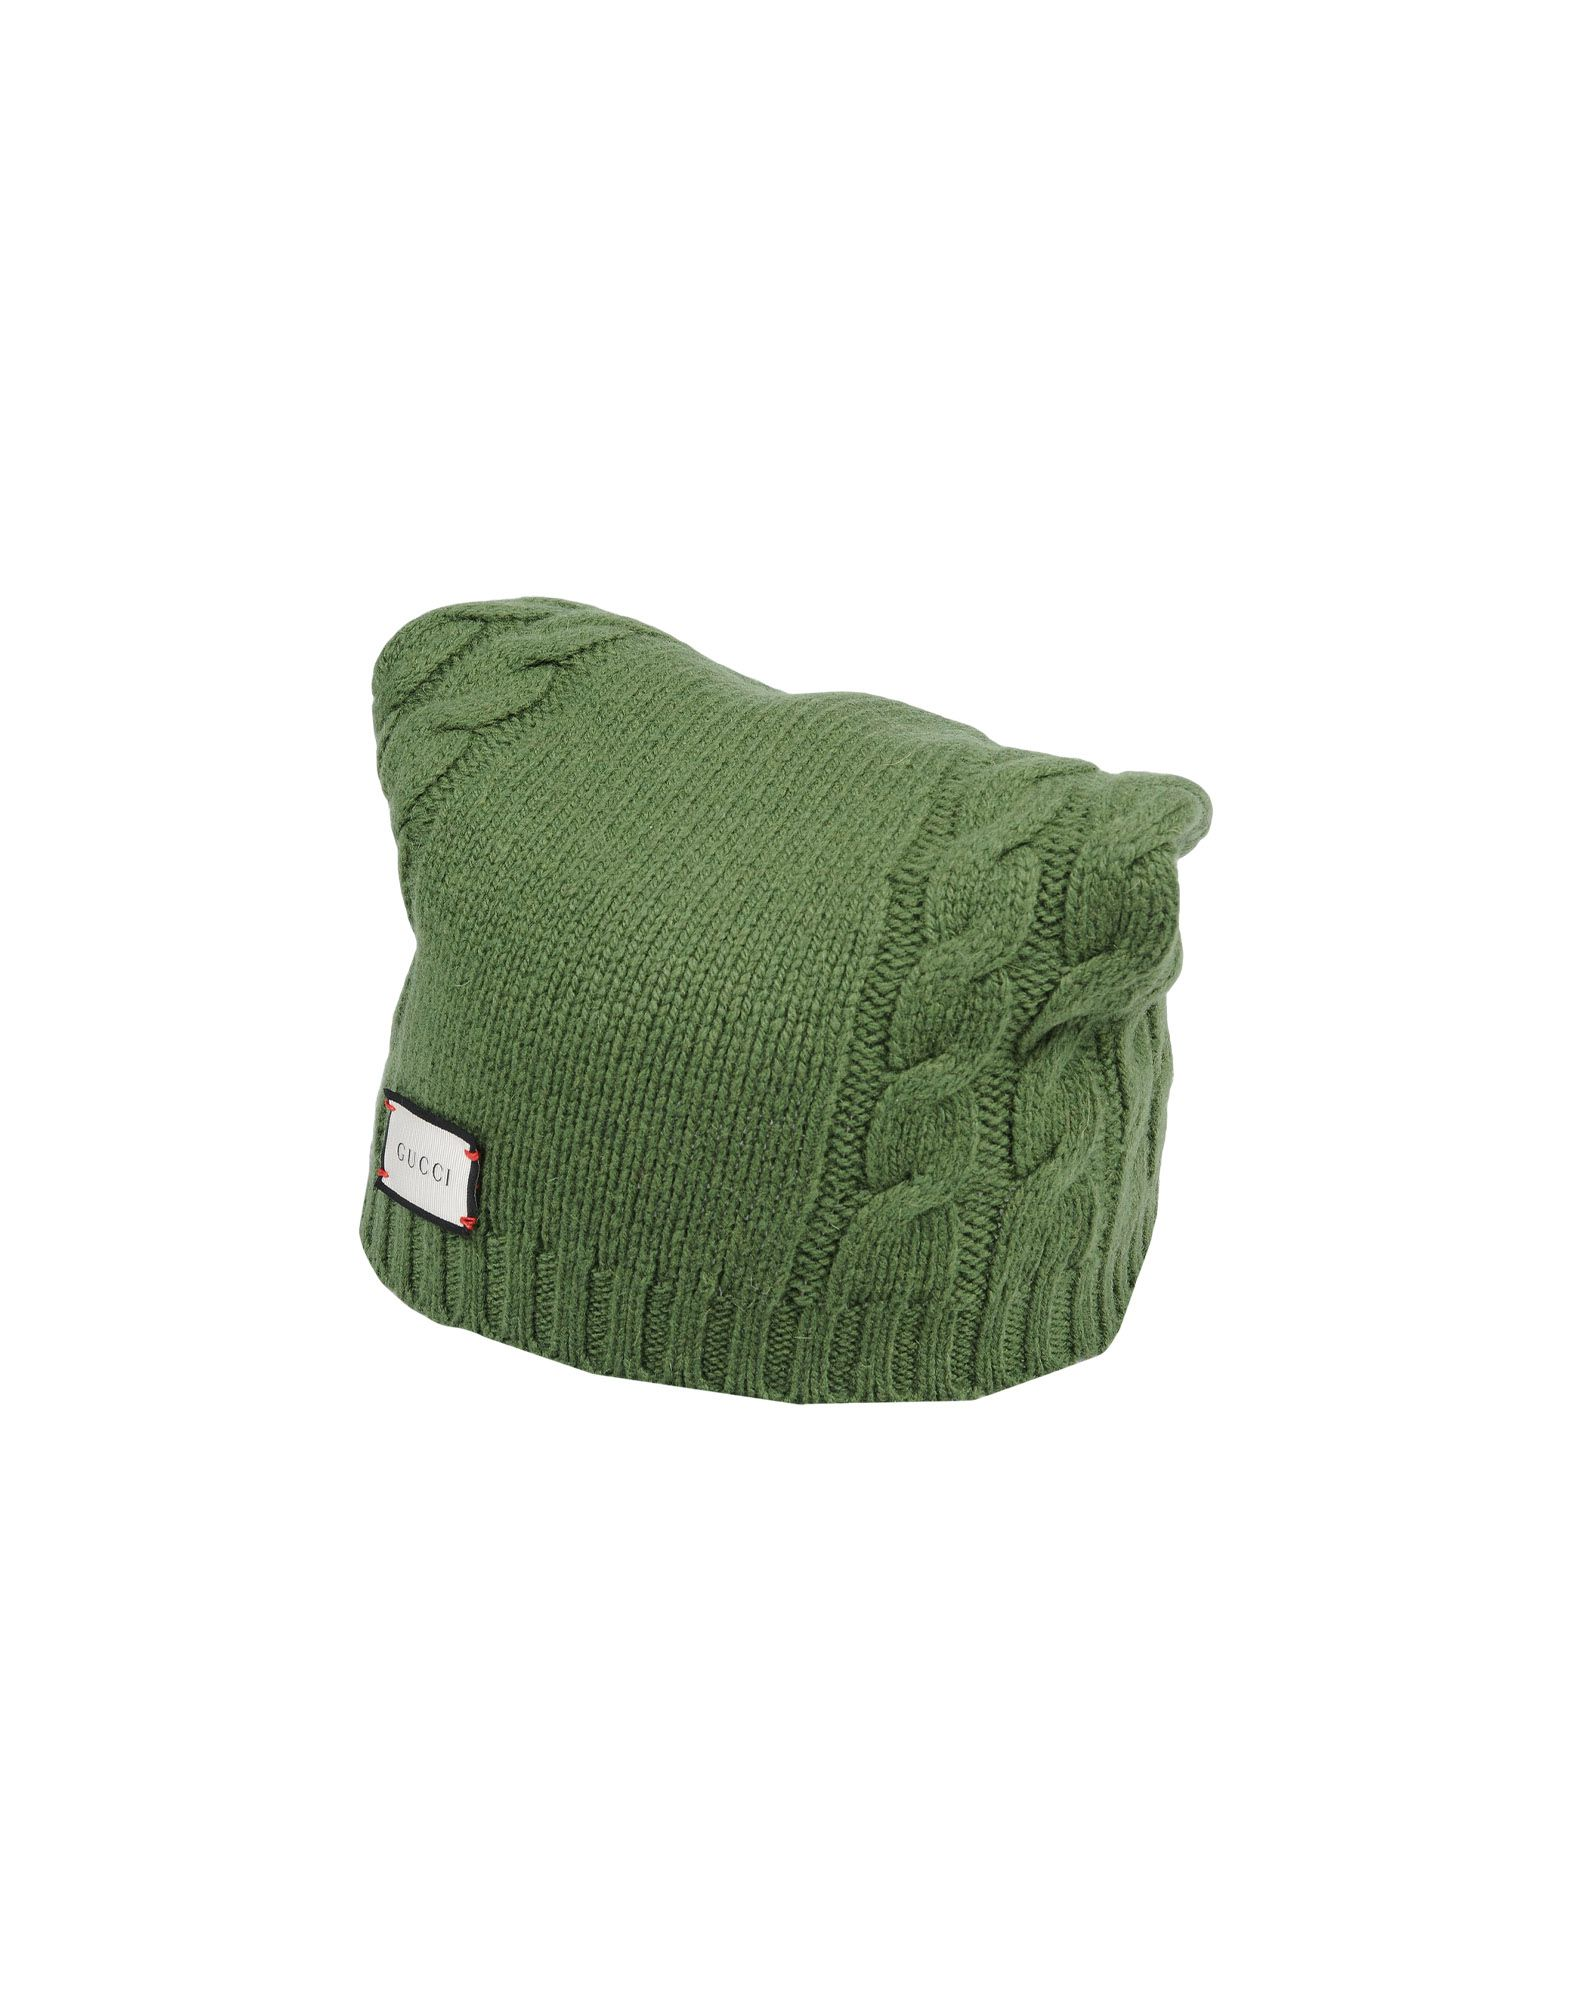 Gucci Hats In Military Green  dbeea864be6